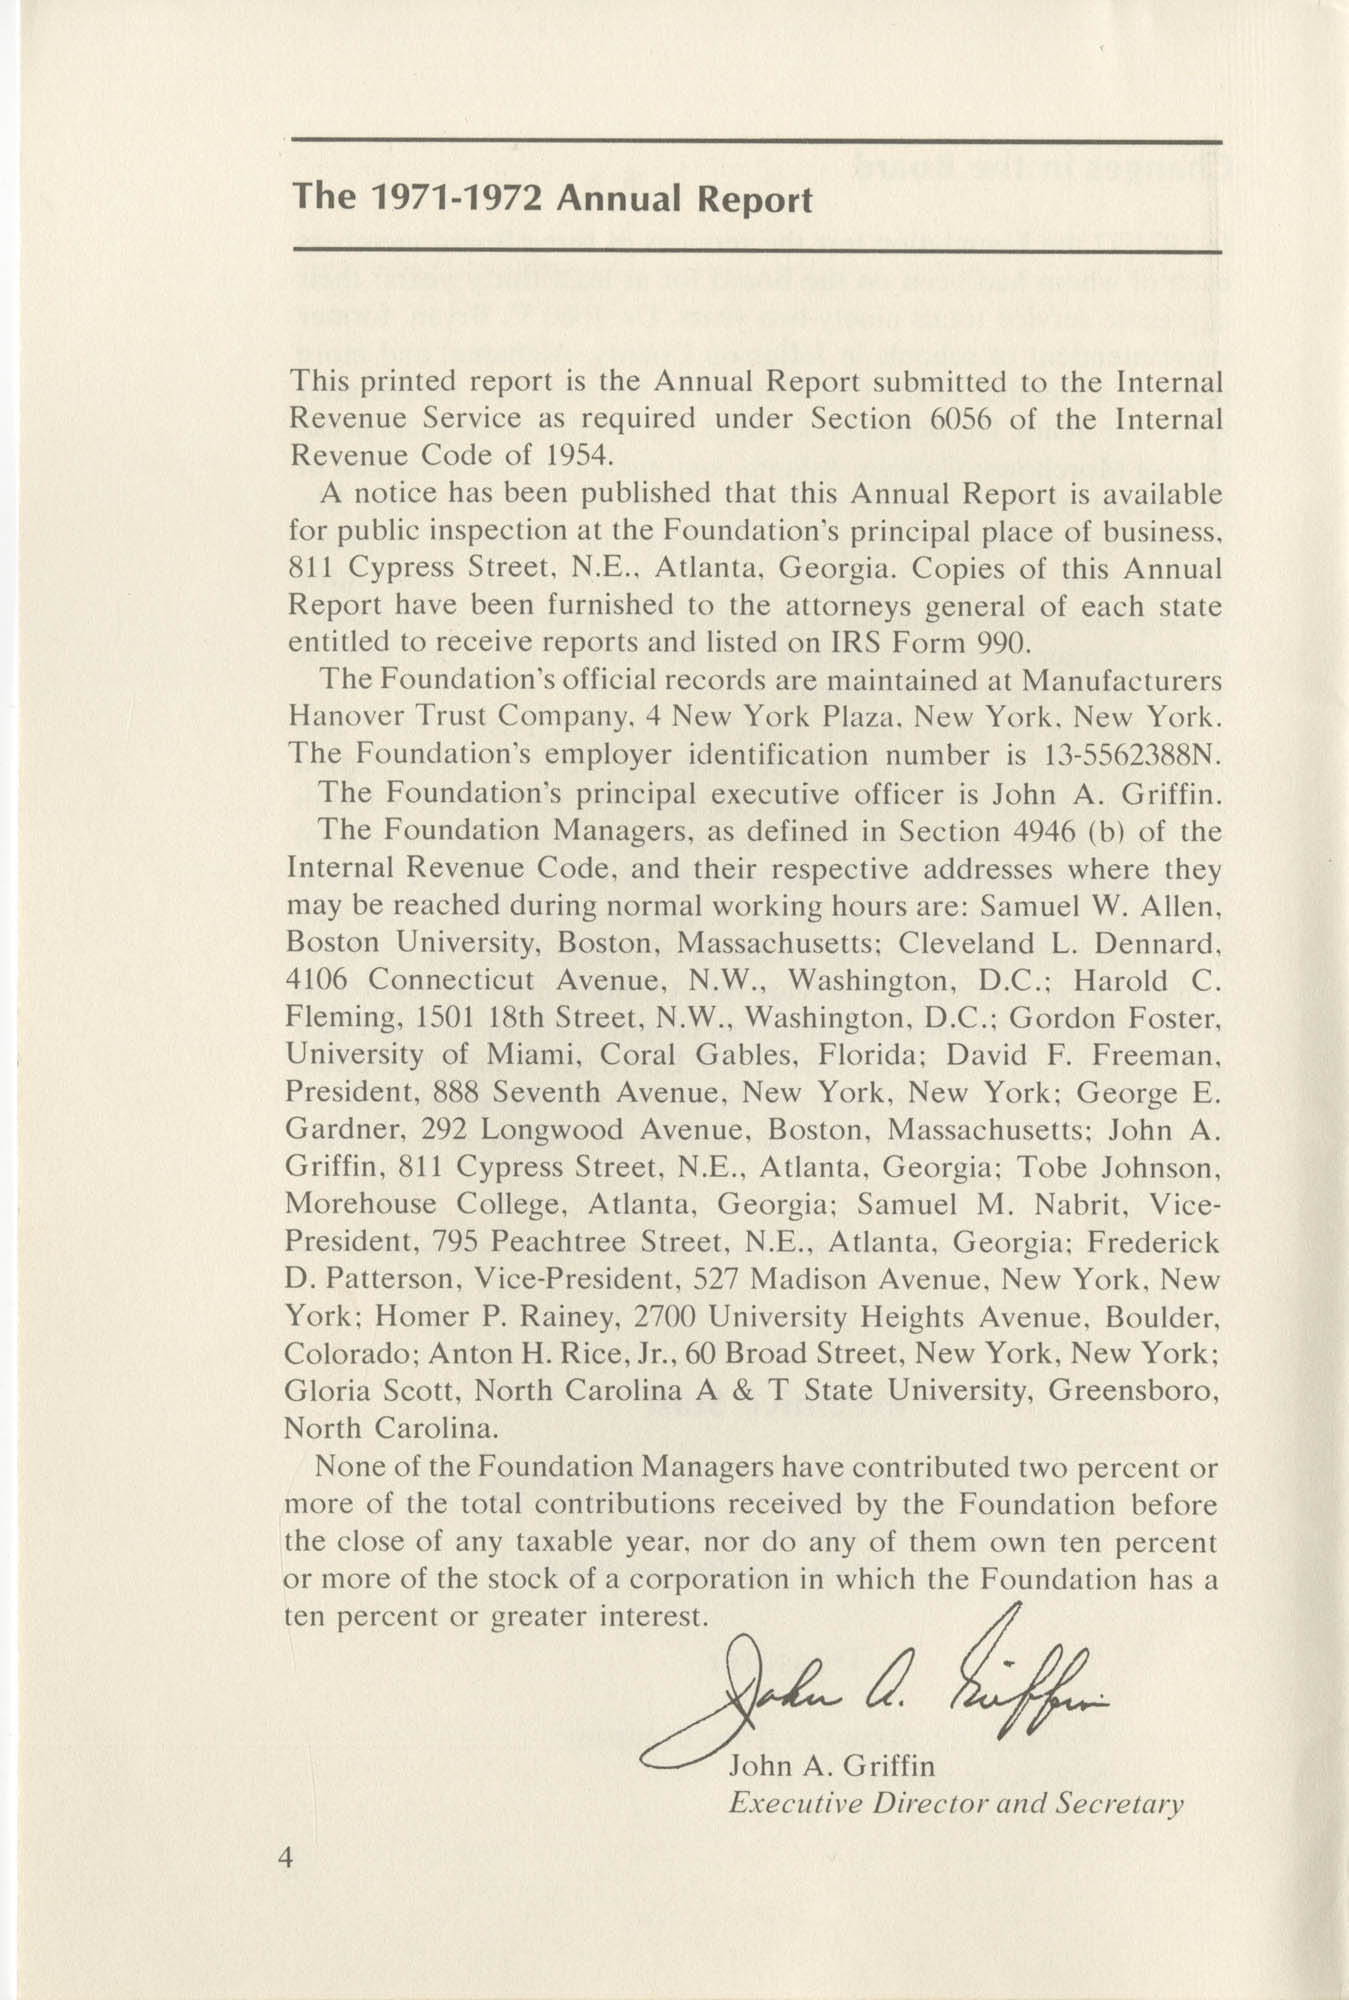 Southern Education Foundation, Annual Report 1971-1972, Page 4